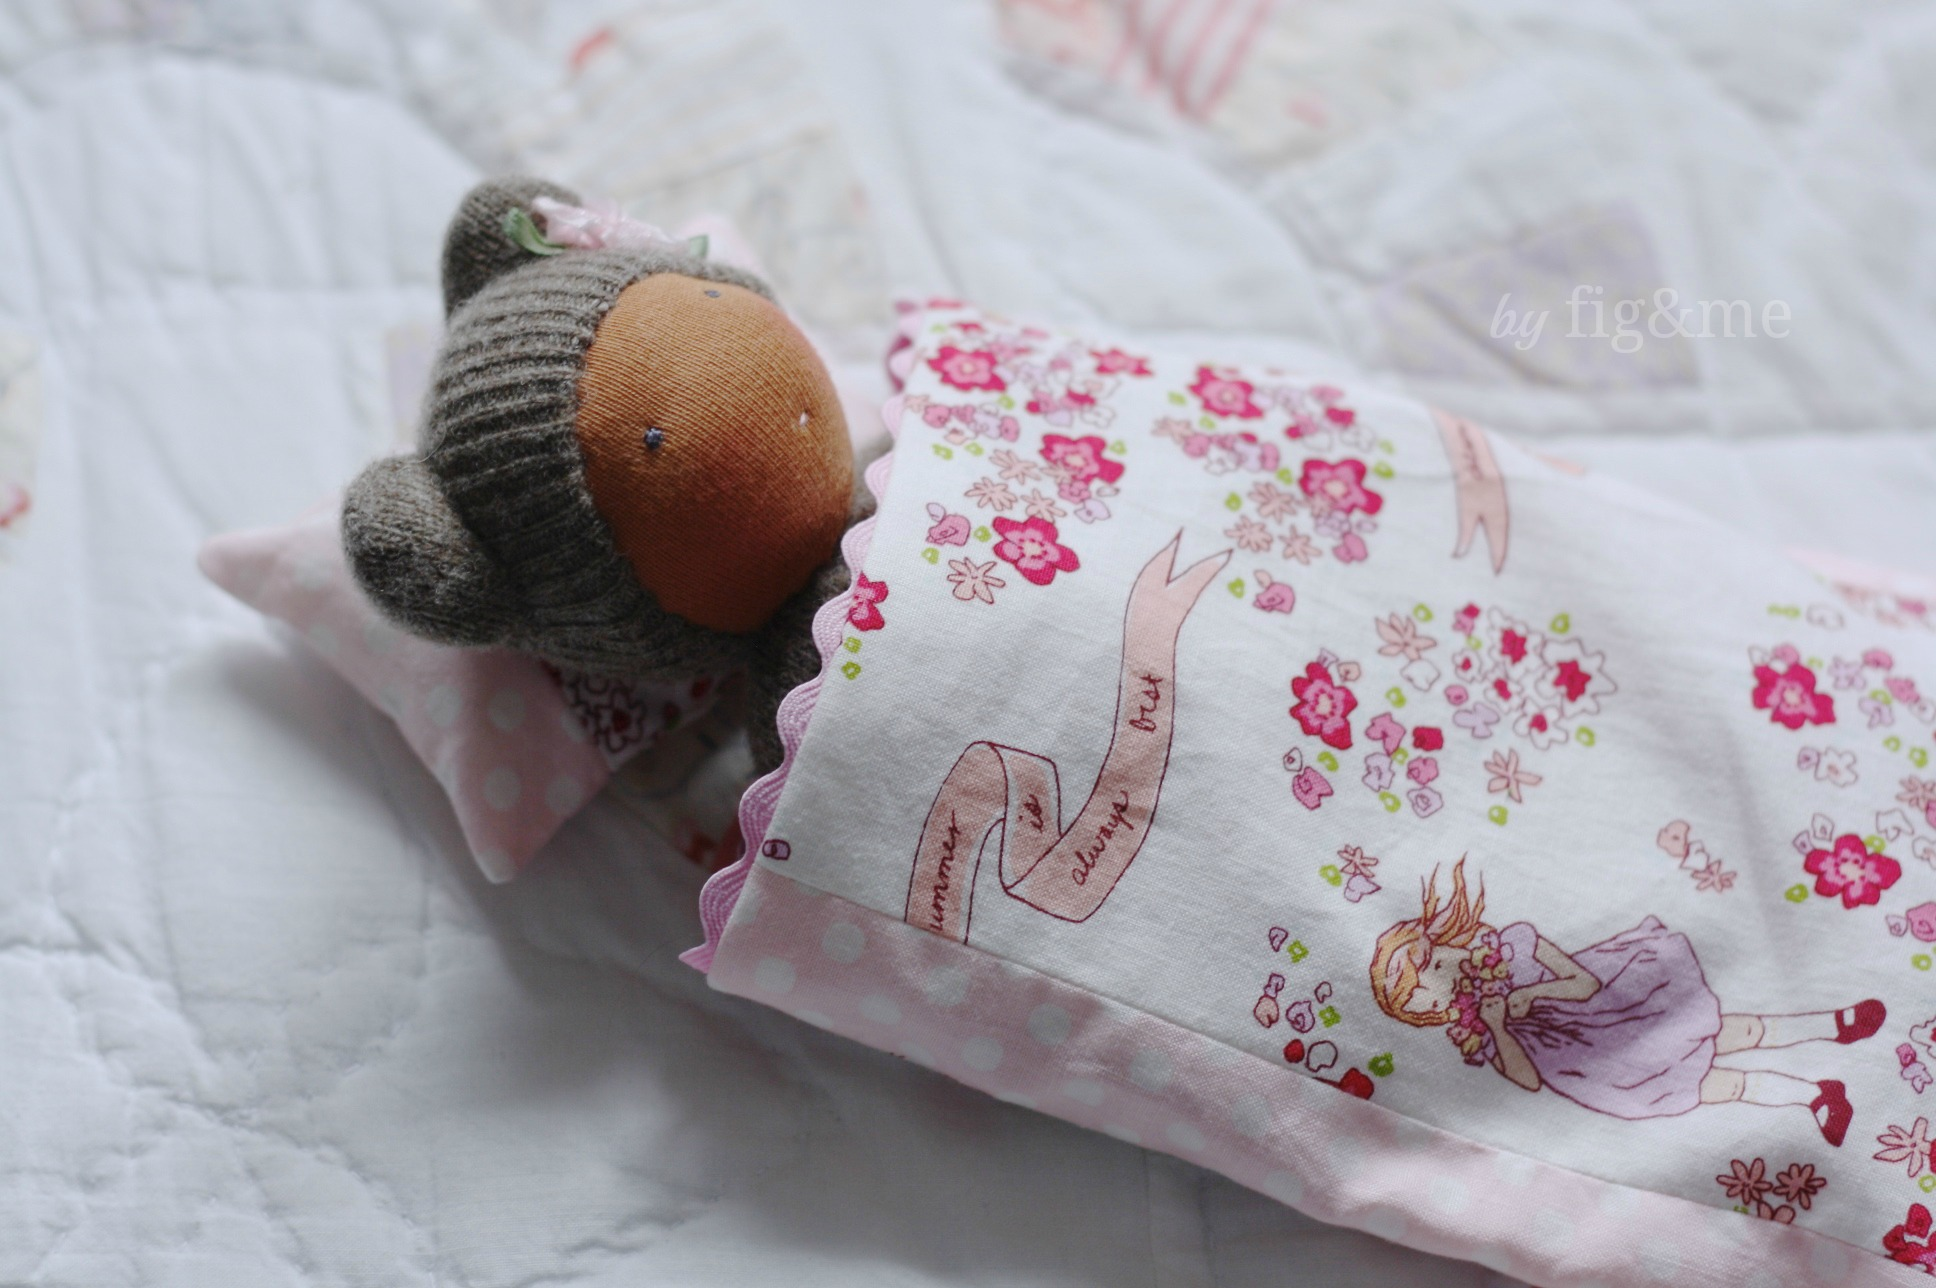 a wee bear sleeping in a bed of pinks